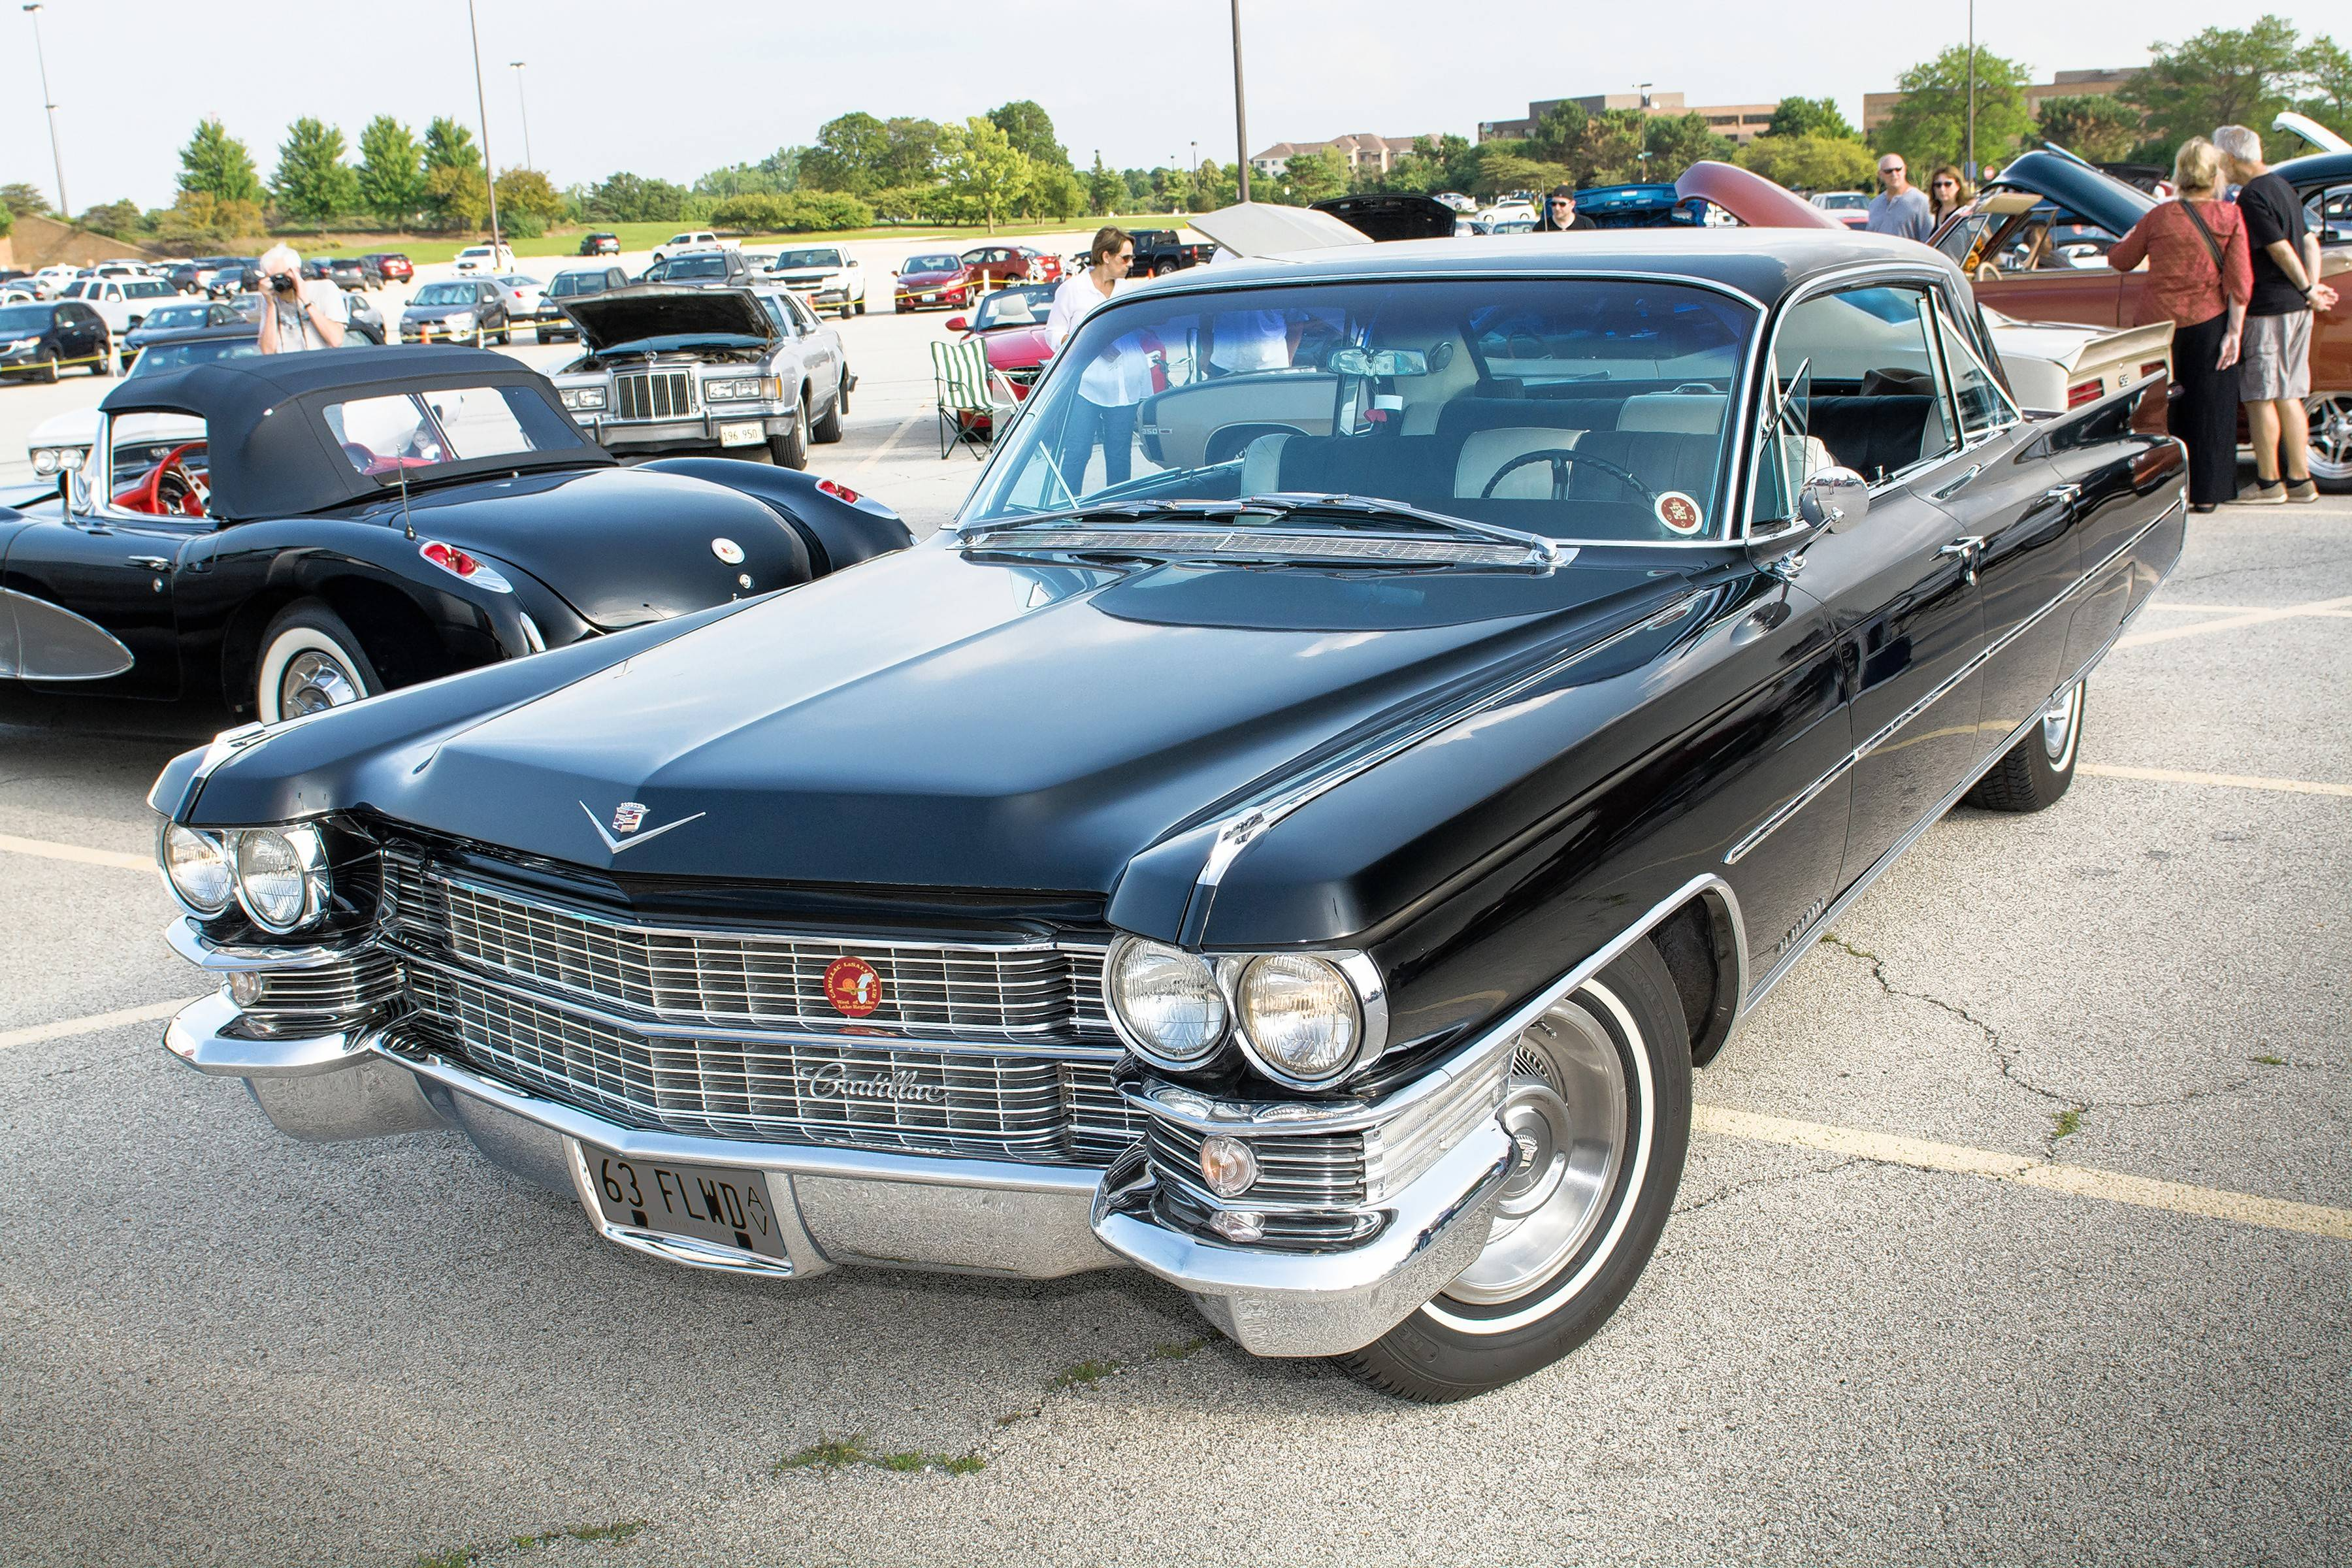 Ray Bombeck, Roselle, IL, 1963 Cadillac Fleetwood 60 Special